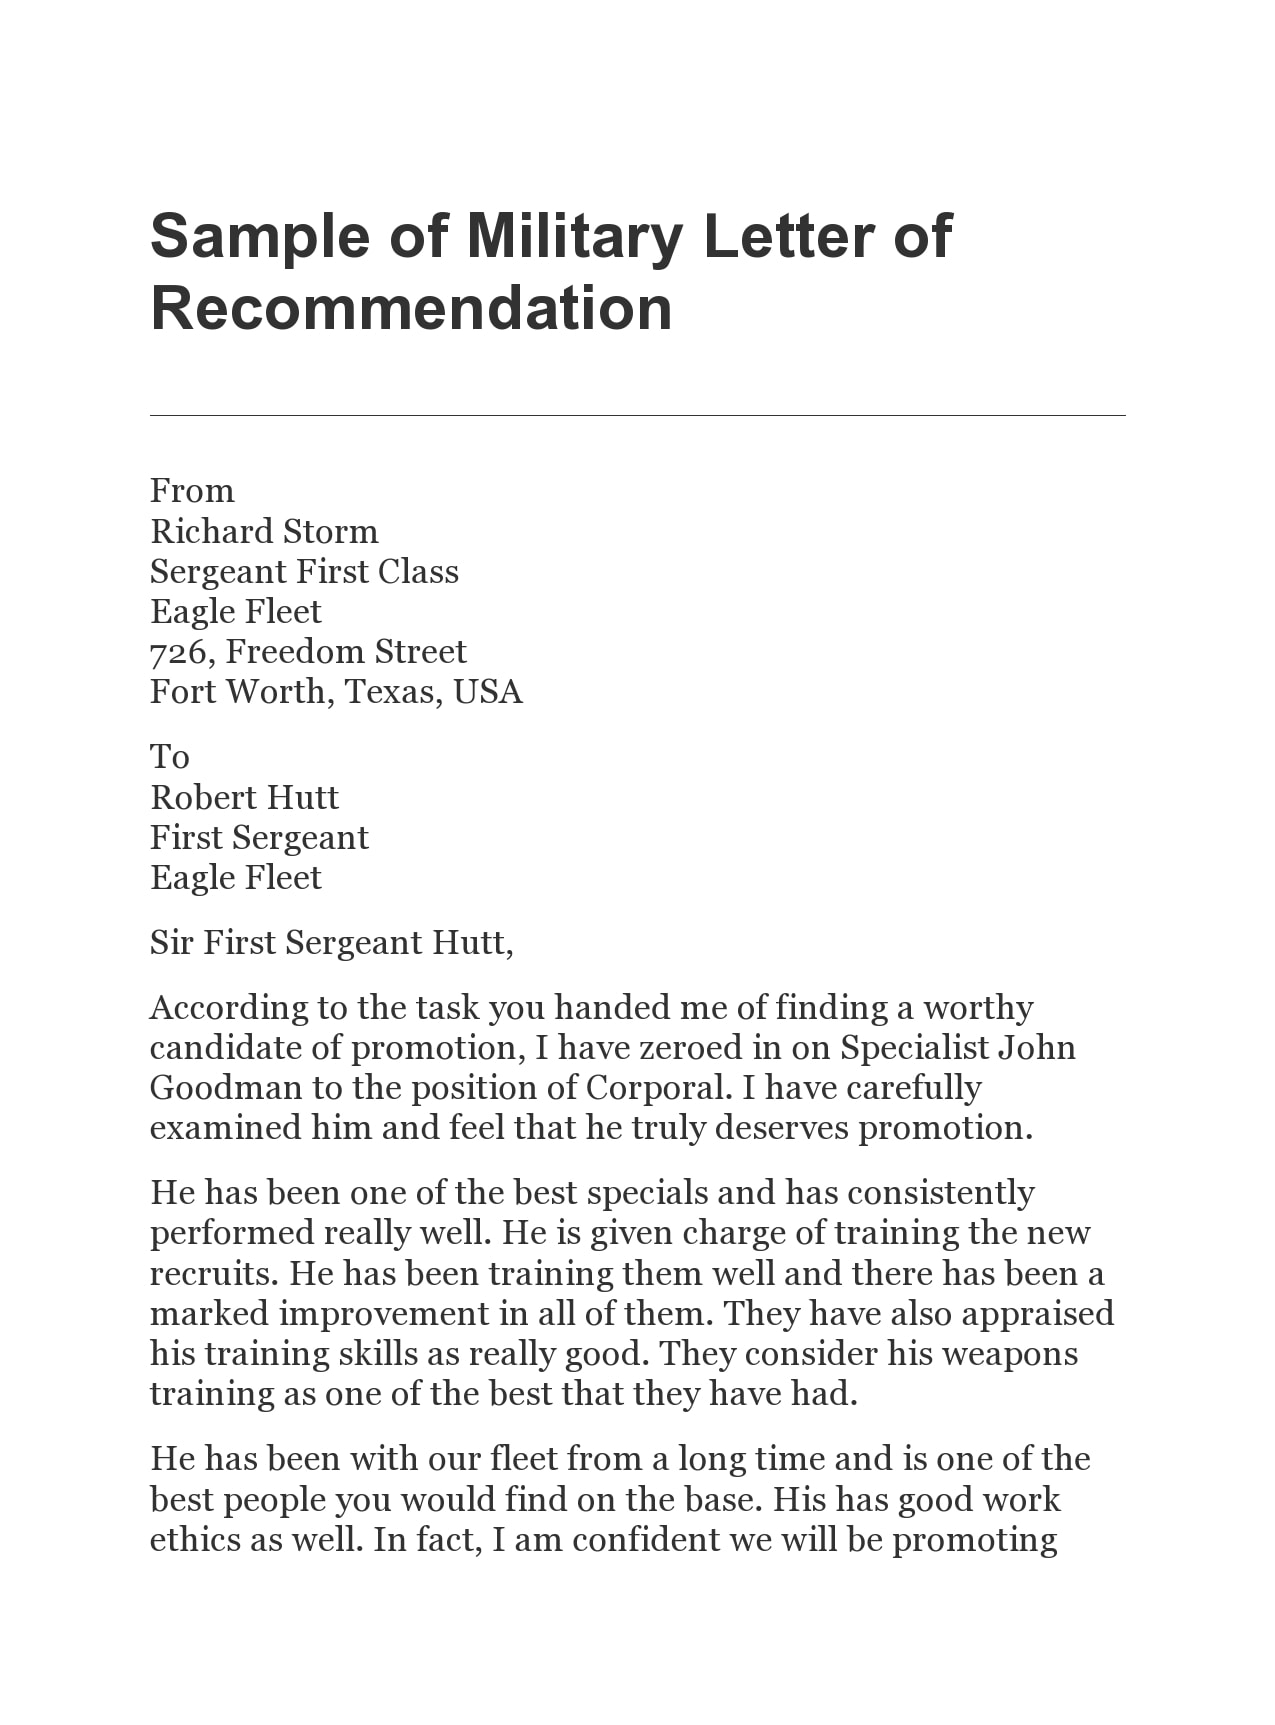 military letter of recommendation 07